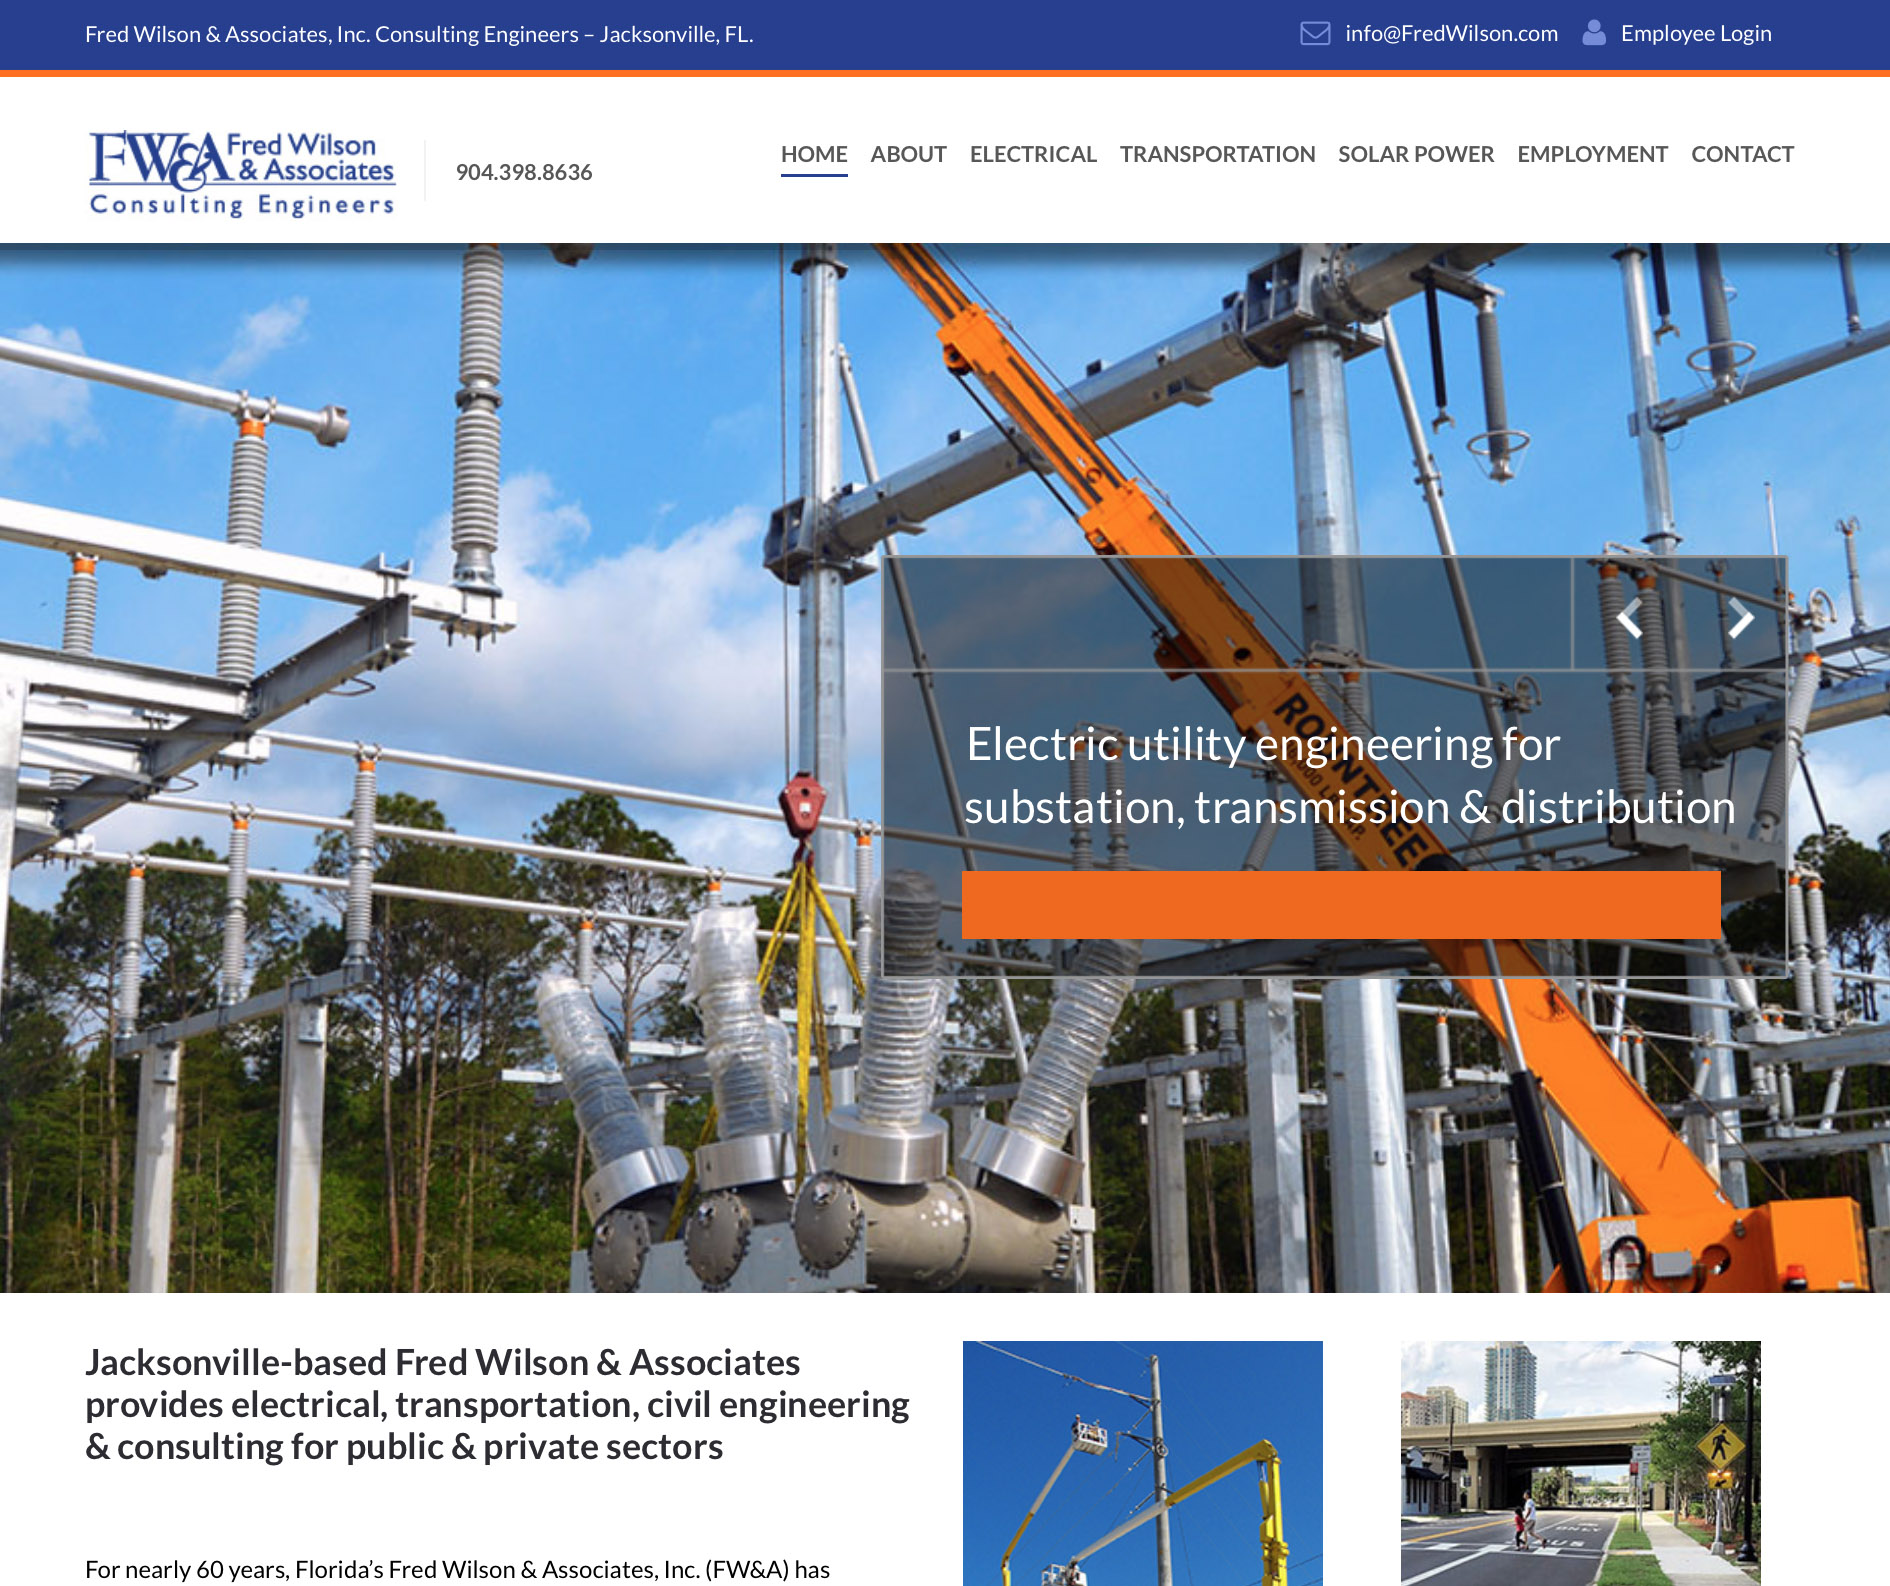 Fred Wilson and Associates Engineers website design